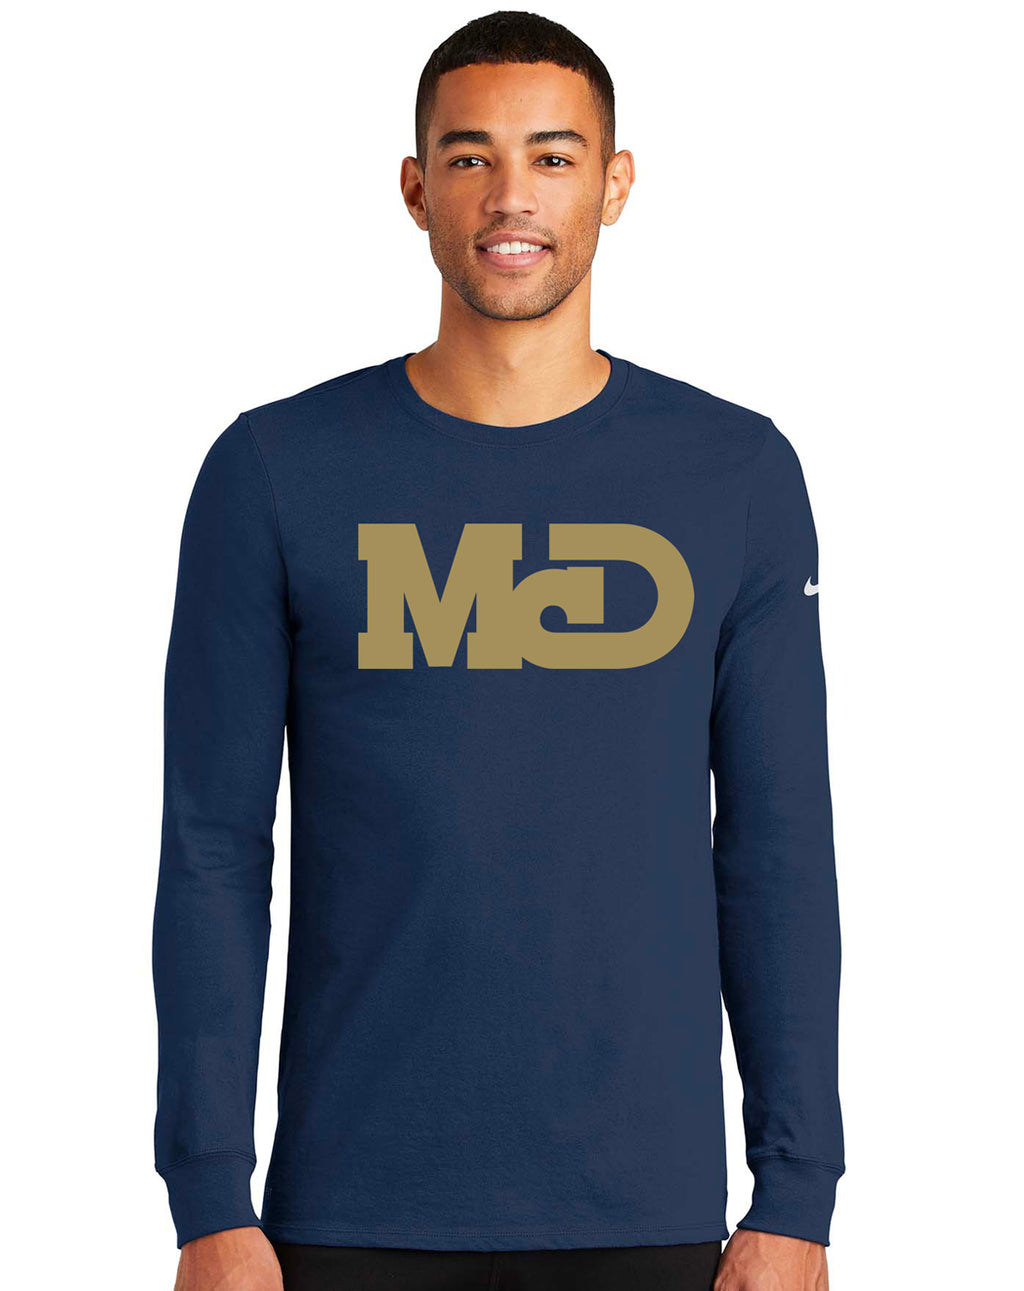 MCD NAVY LONG SLEEVE TSHIRT